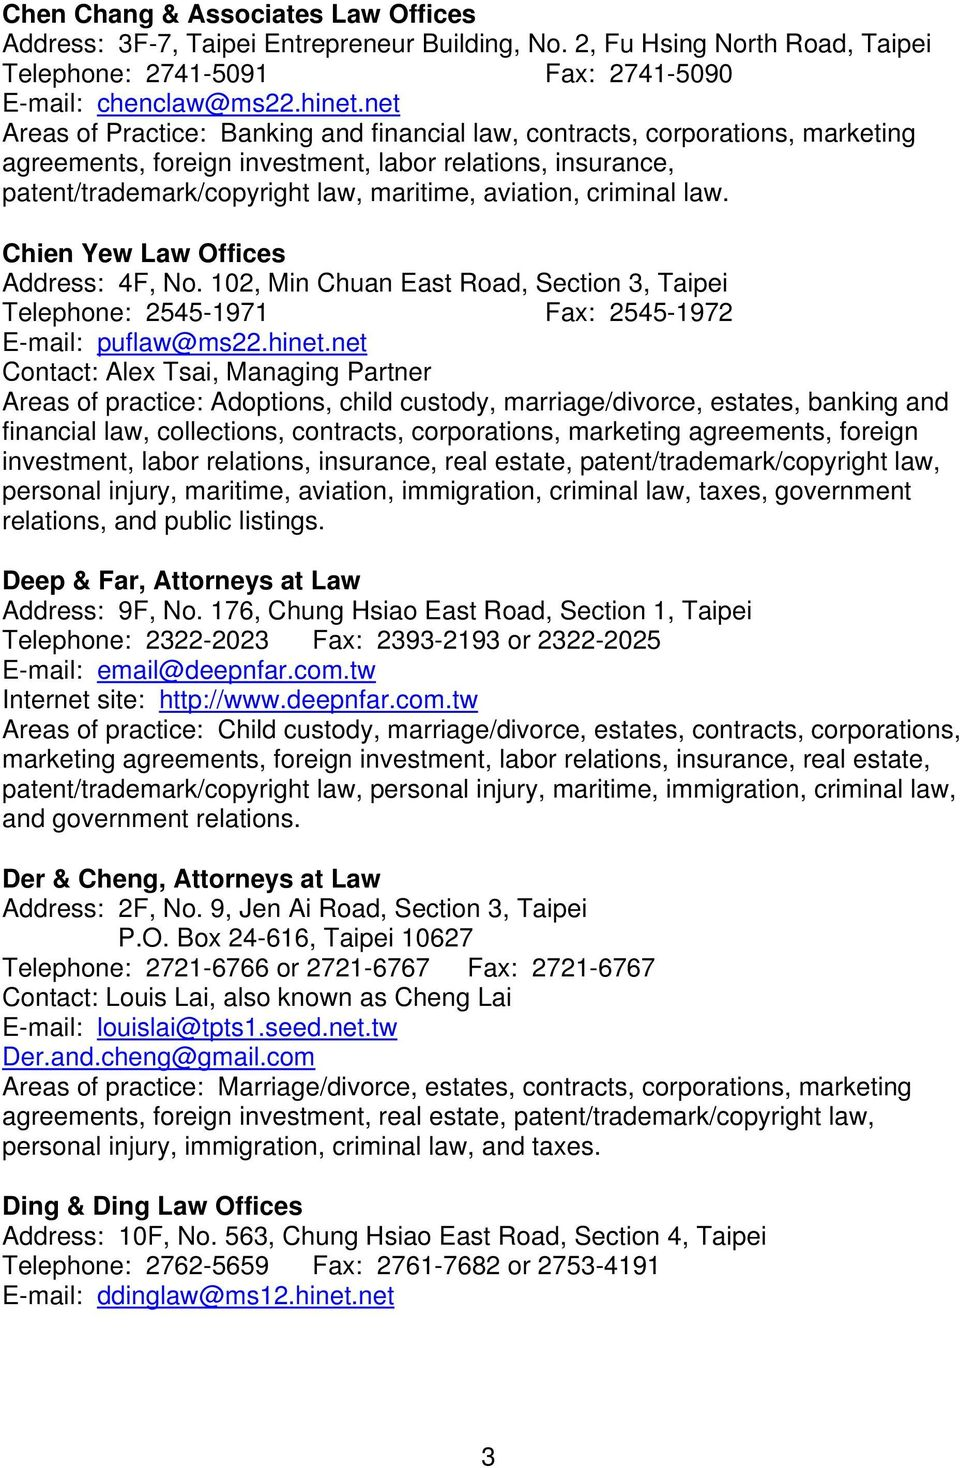 criminal law. Chien Yew Law Offices Address: 4F, No. 102, Min Chuan East Road, Section 3, Taipei Telephone: 2545-1971 Fax: 2545-1972 E-mail: puflaw@ms22.hinet.